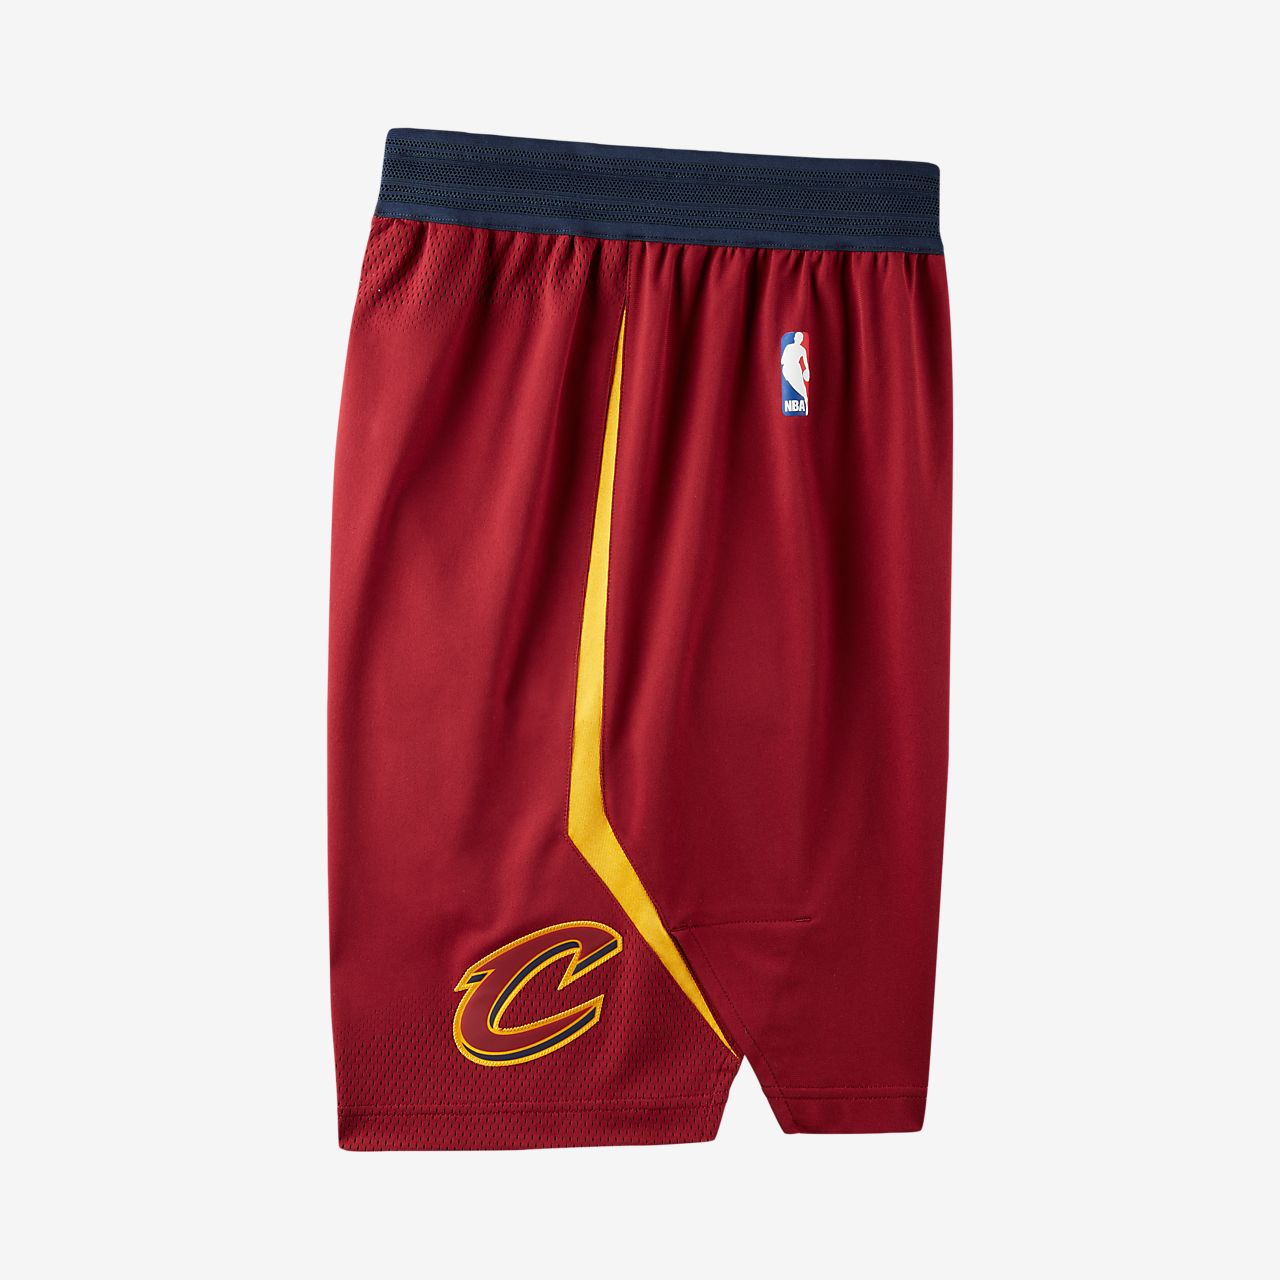 Authentic Cavaliers Cleveland Homme Nike Edition Icon NBA Short pour de x0BtcUa